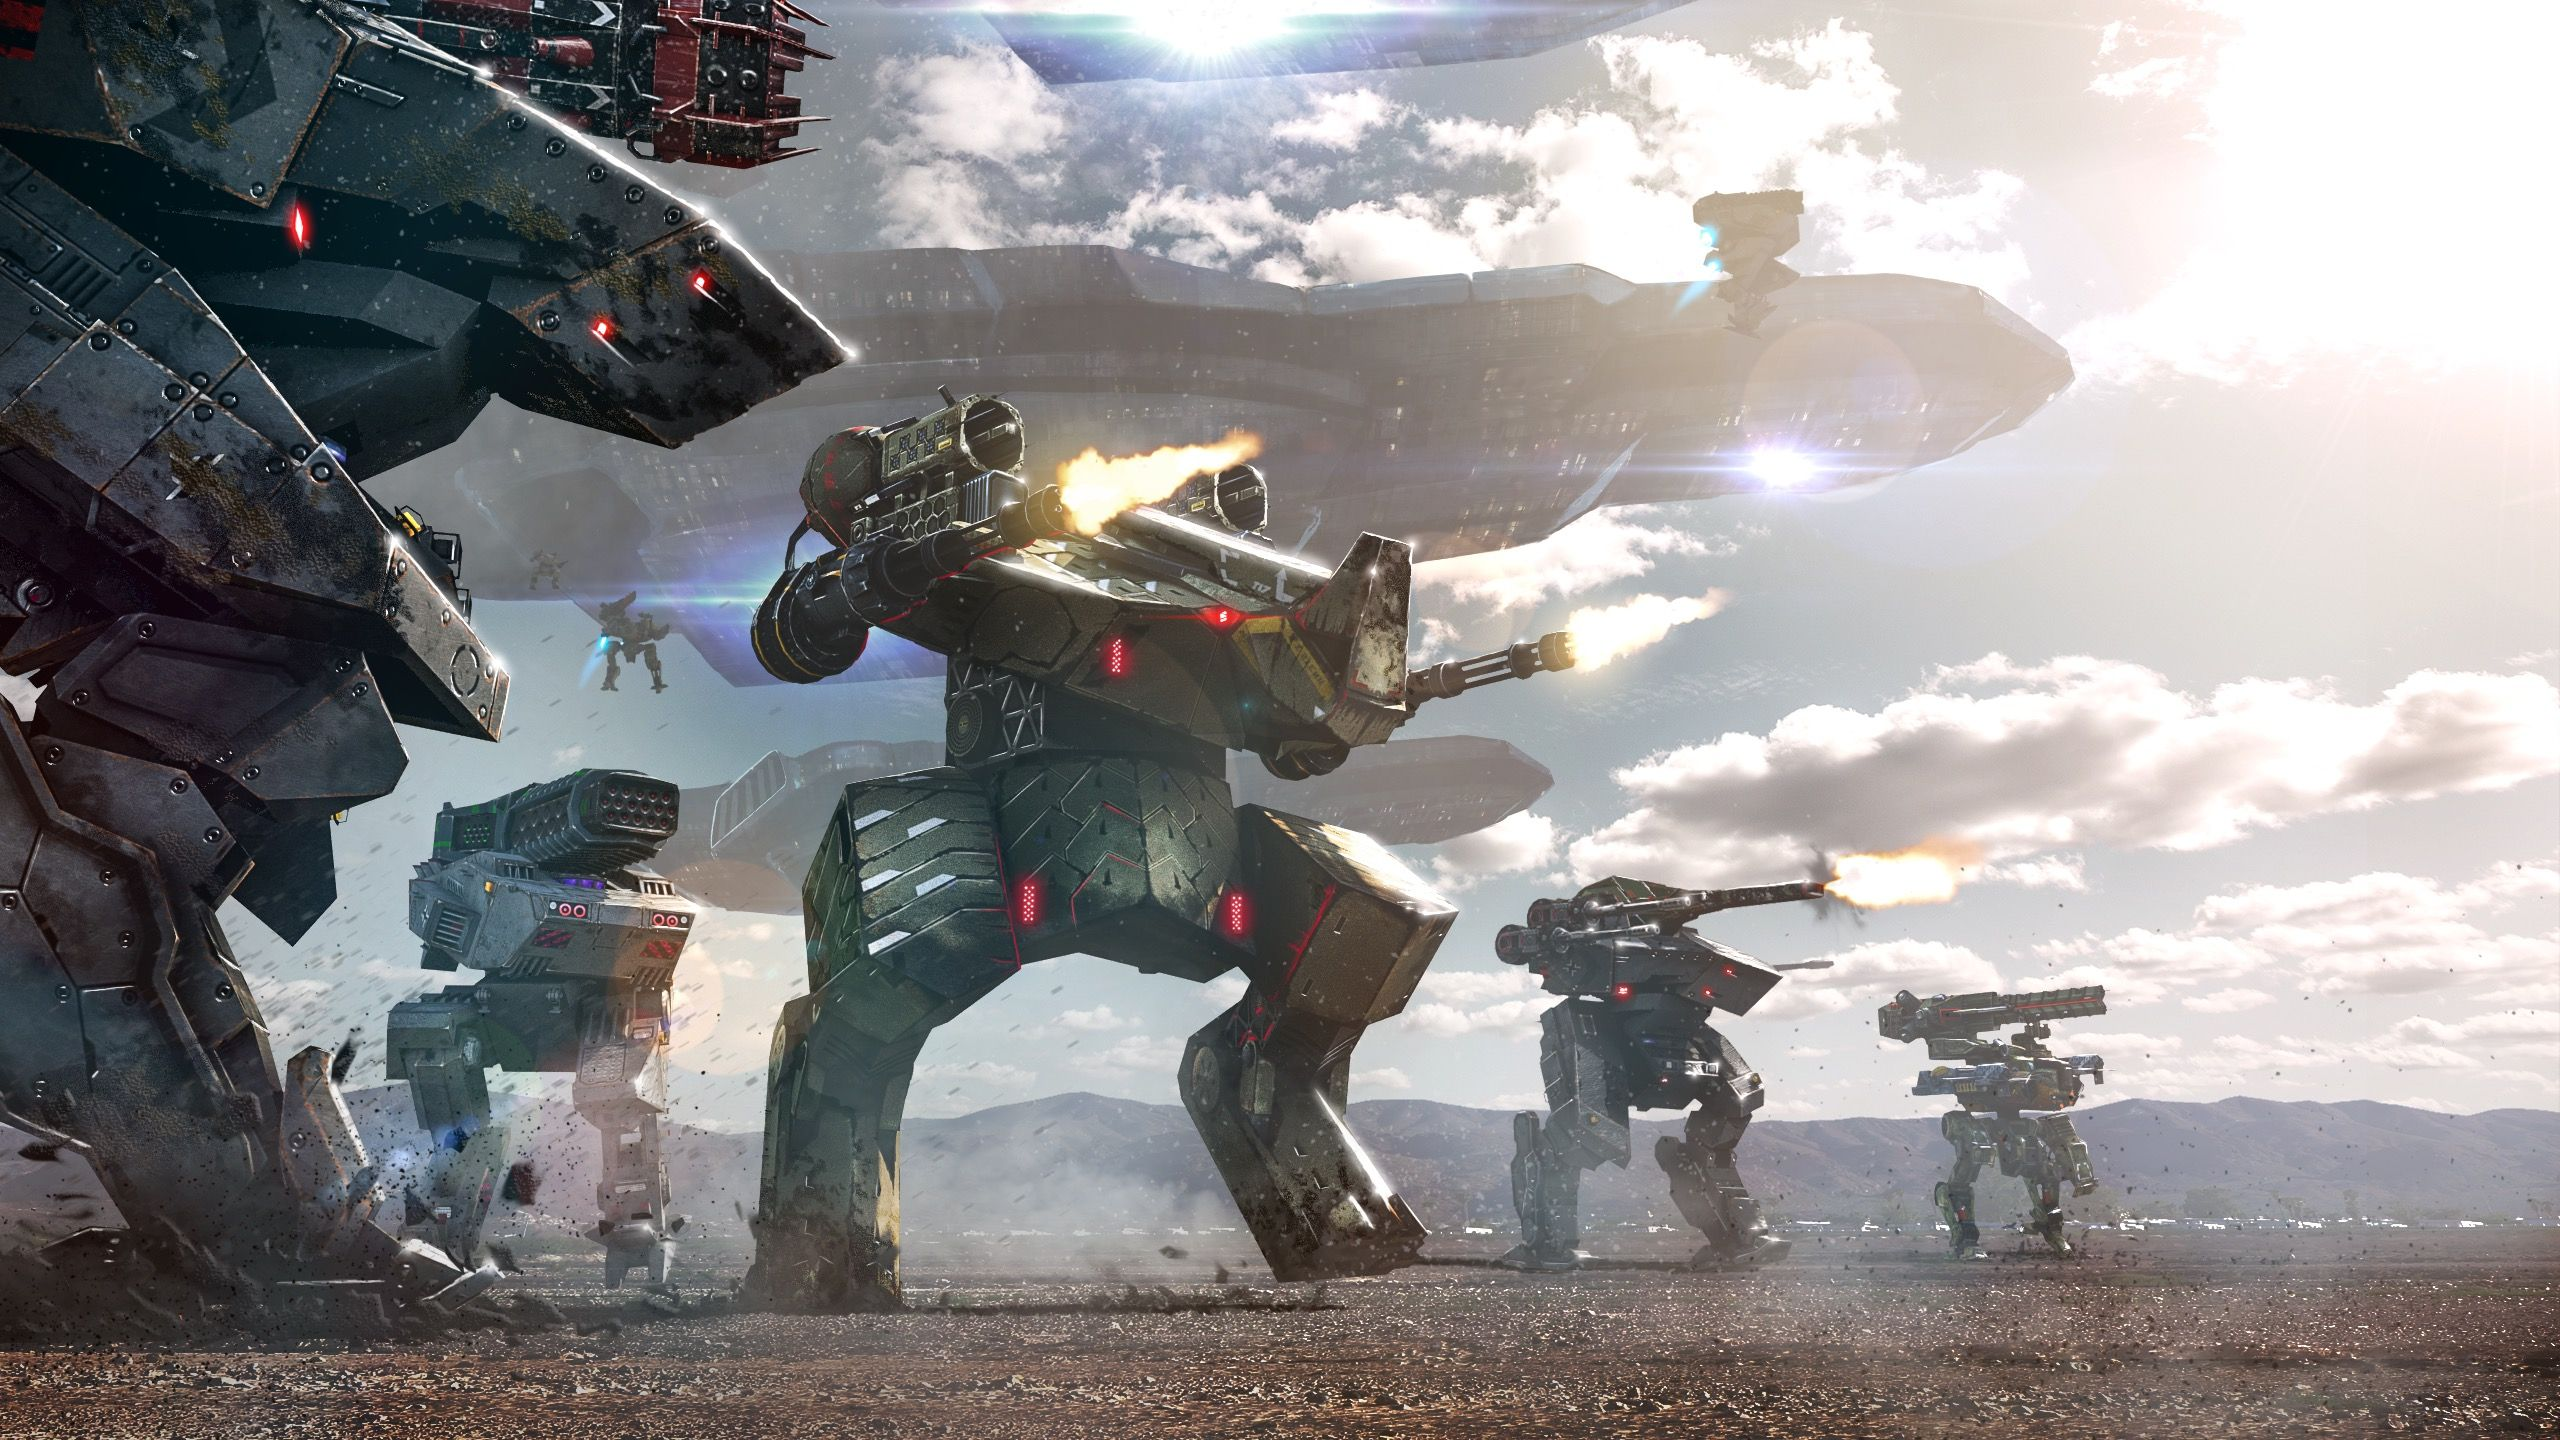 Walking War Robot Wallpapers High Quality Resolution On Wallpaper 1080p Hd Robot Wallpaper Robot Picture Futuristic Robot